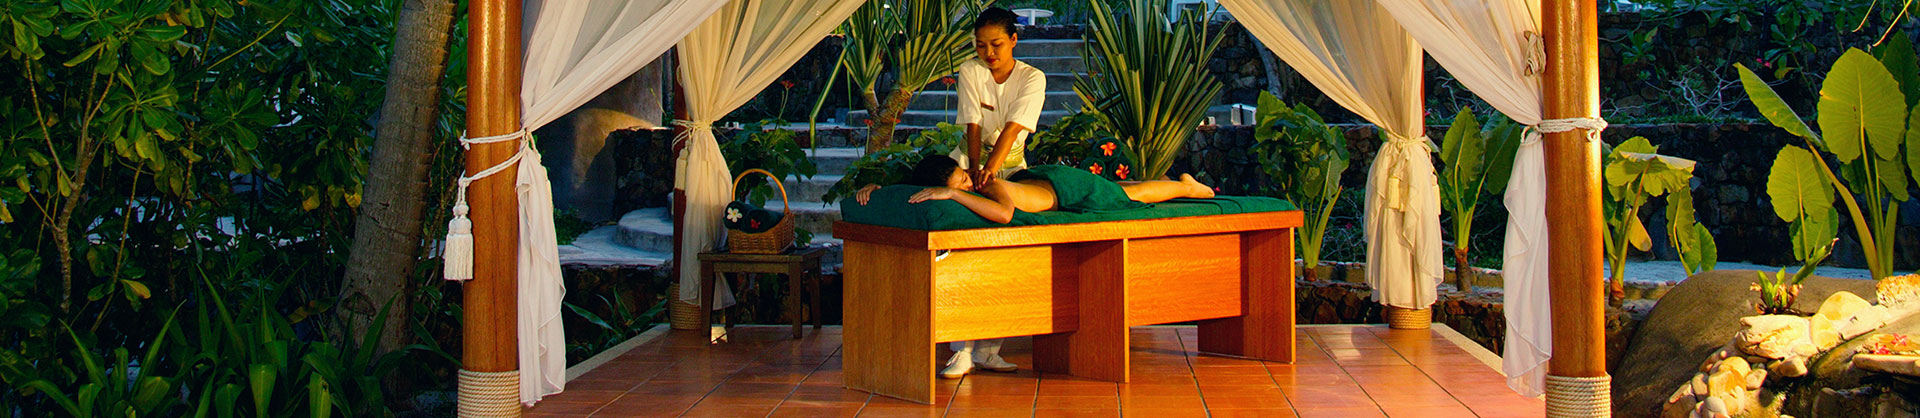 If you're after the ultimate day spa experience, look no further than the beautiful island of Bali, in Indonesia, which won the esteemed AsiaSpa Award for Asian Spa Capital of the Year in 2011. Bali exudes calm, rest and relaxation...read more